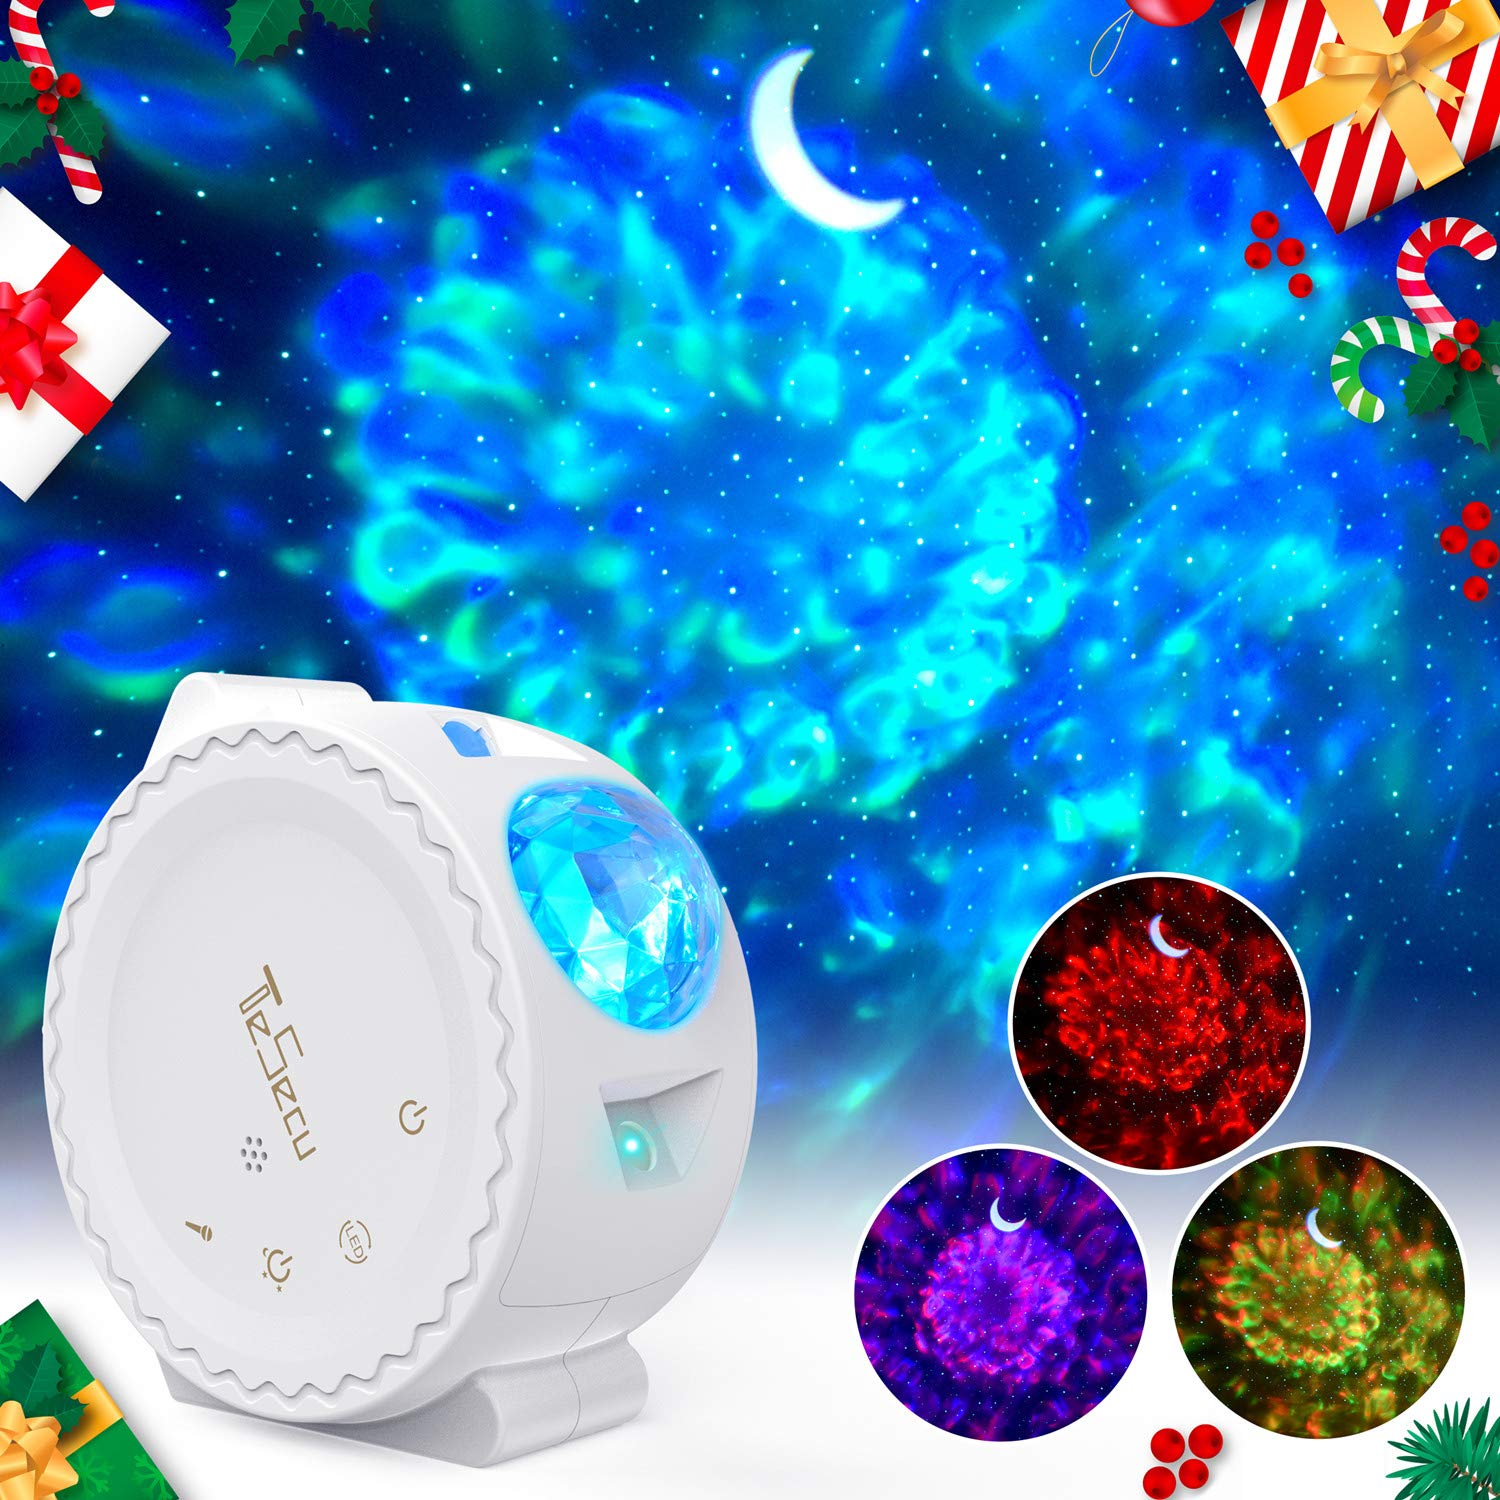 Tesecu Star Projector Light LED Water Wave Light Projector for Kids Baby 13 Light Effects Starry Night Light Projector with Voice Control Romantic Bedroom Gifts for Birthday Christmas